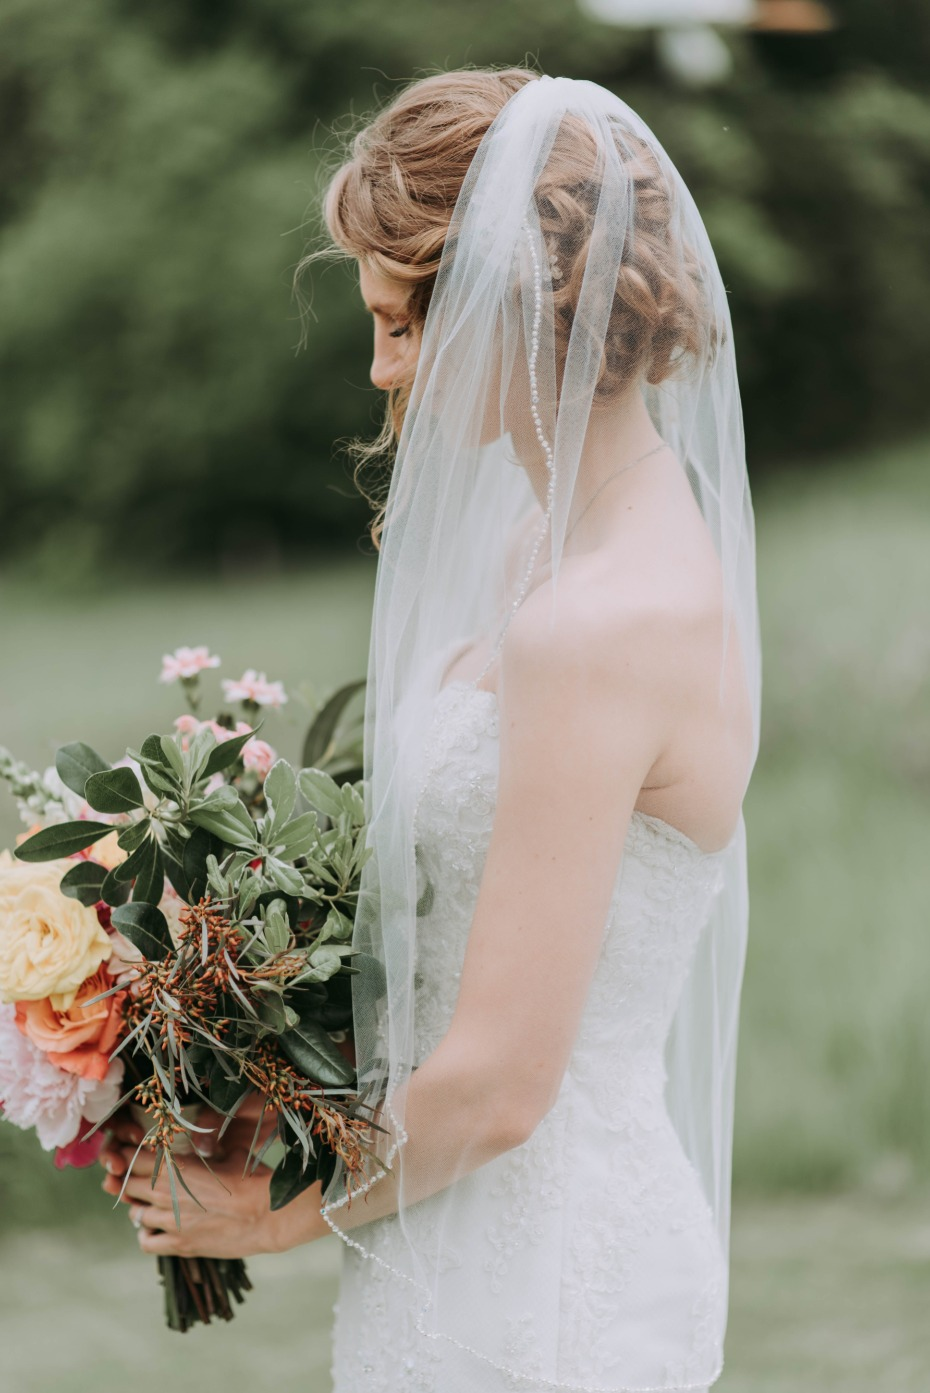 Bride looking down at her bouquet with veil on